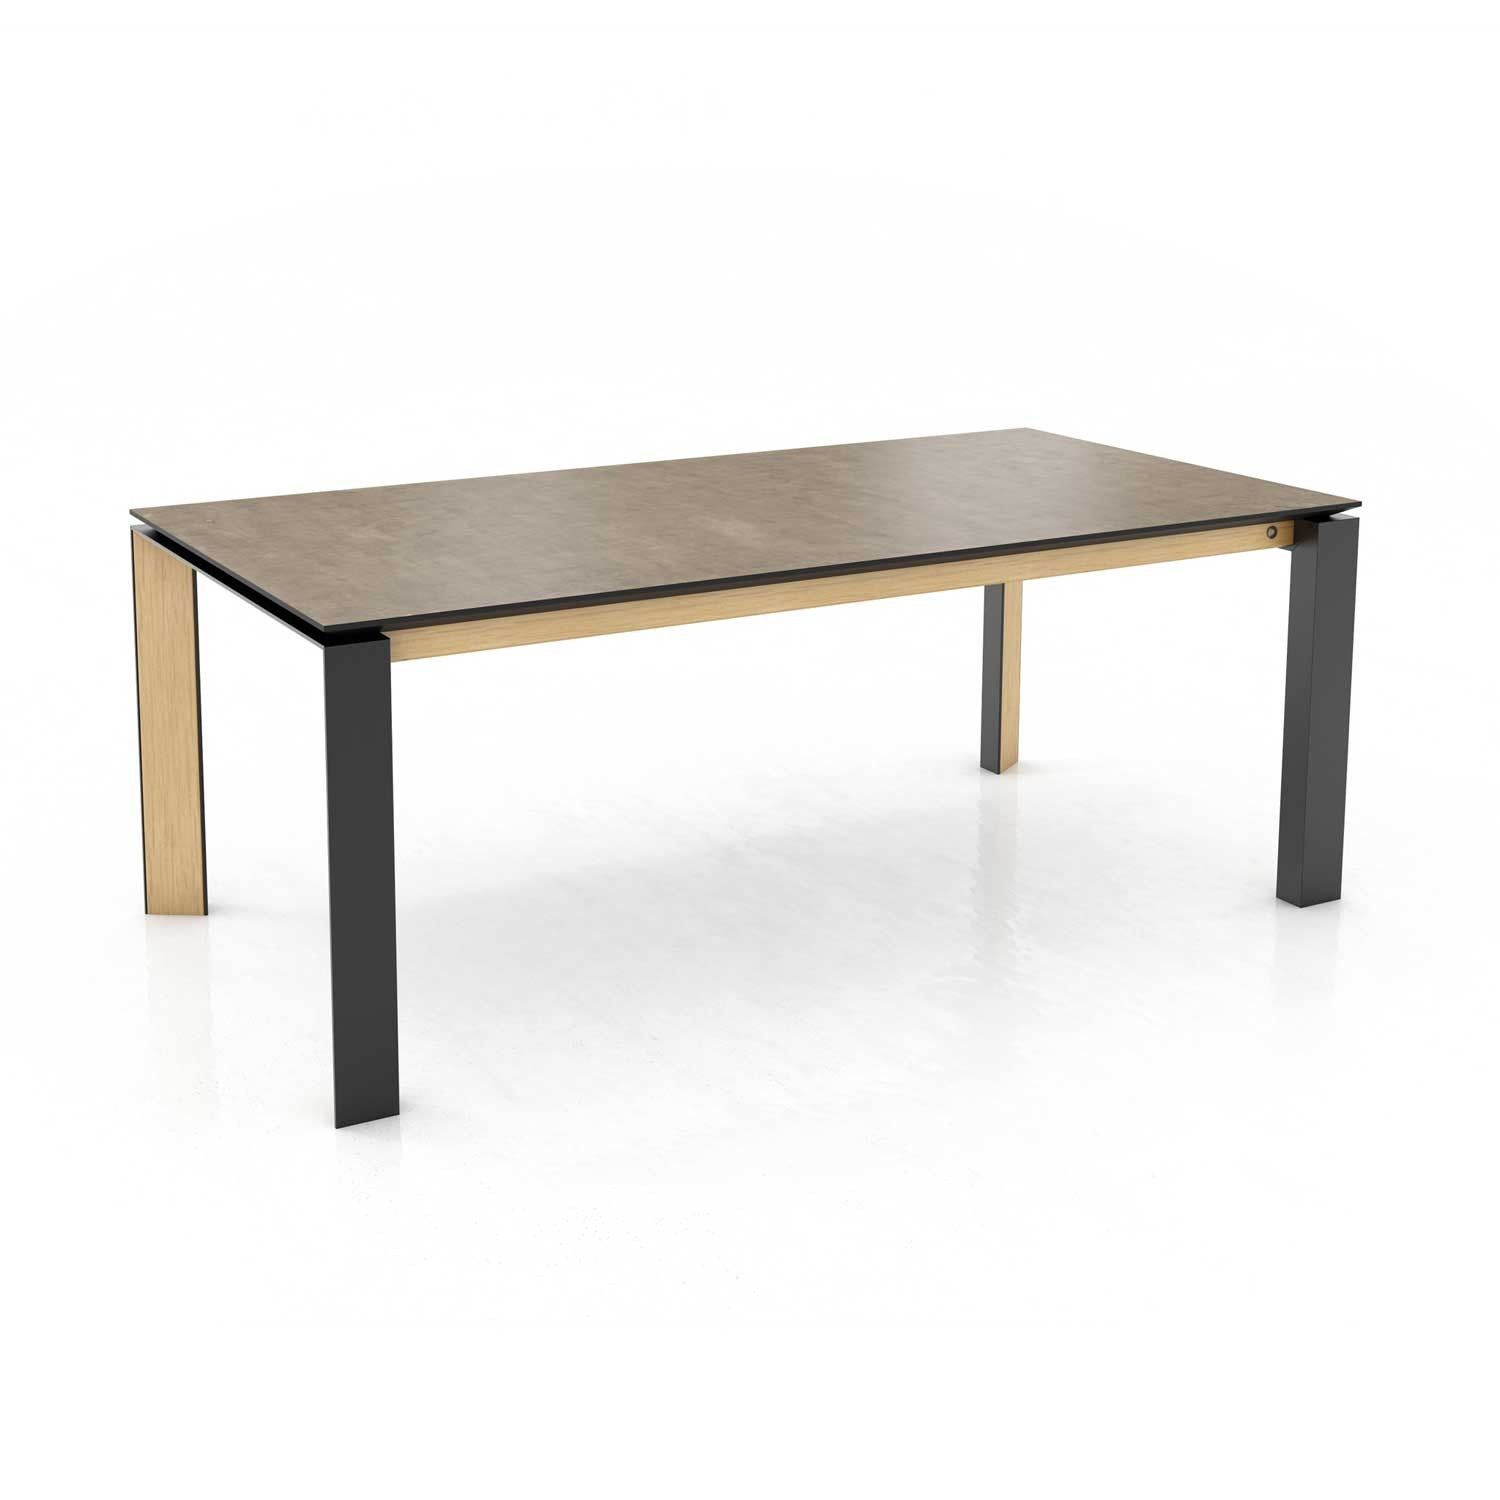 Mason metal leg PB3 Ceramic + walnut dining table